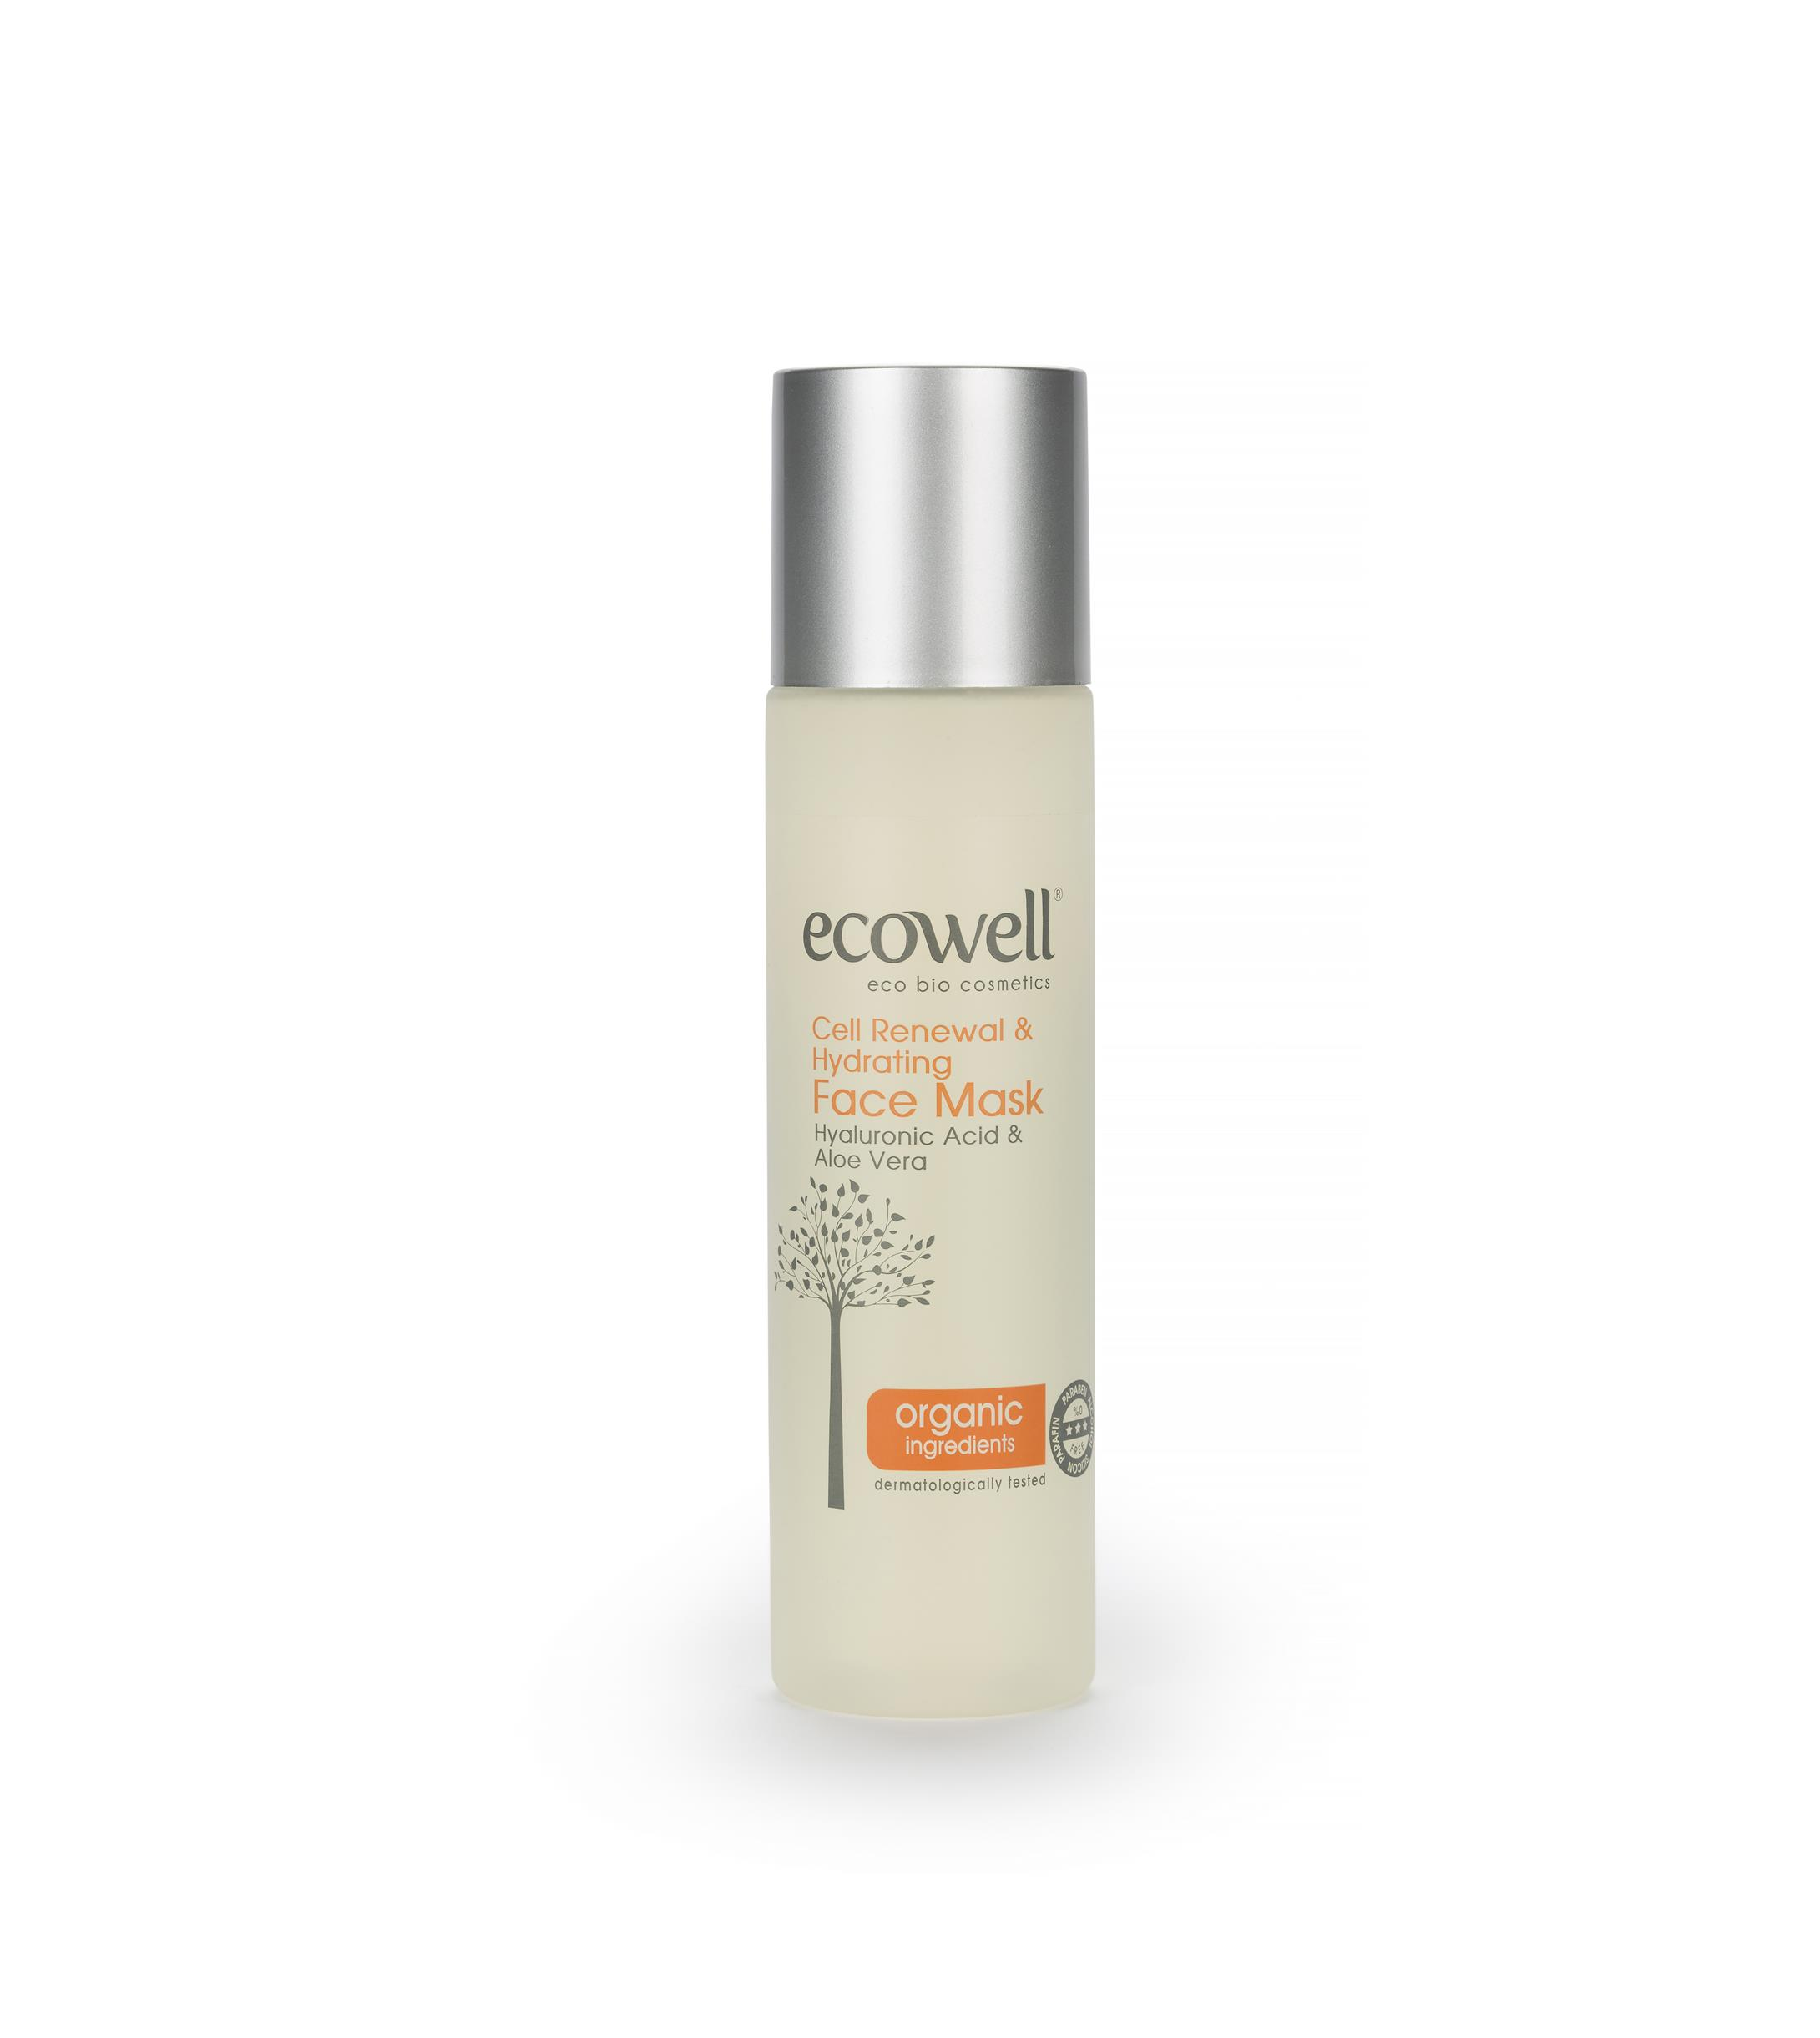 ECOWELL CELL RENEWAL & HYDRATING FACE MASK (150ML)